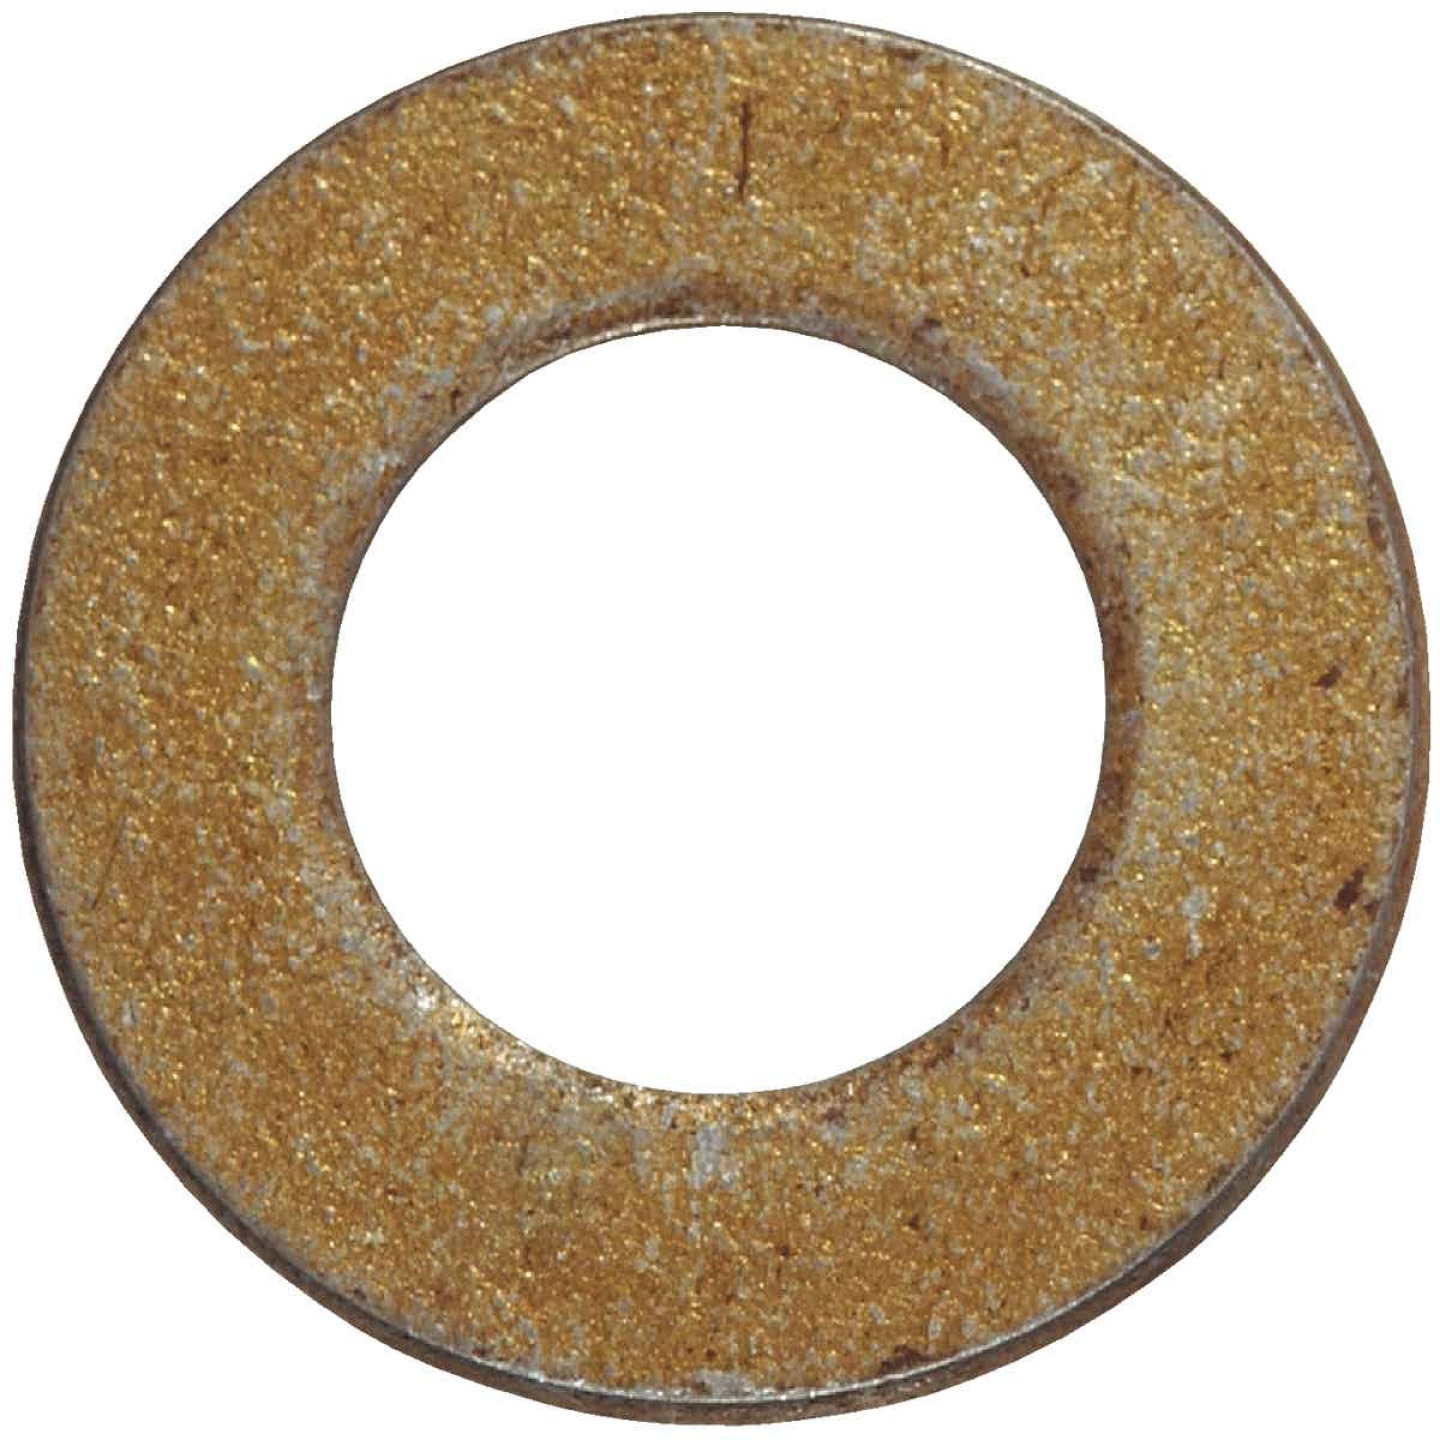 Hillman 1/2 In. SAE Hardened Steel Yellow Dichromate Flat Washer (50 Ct.) Image 1